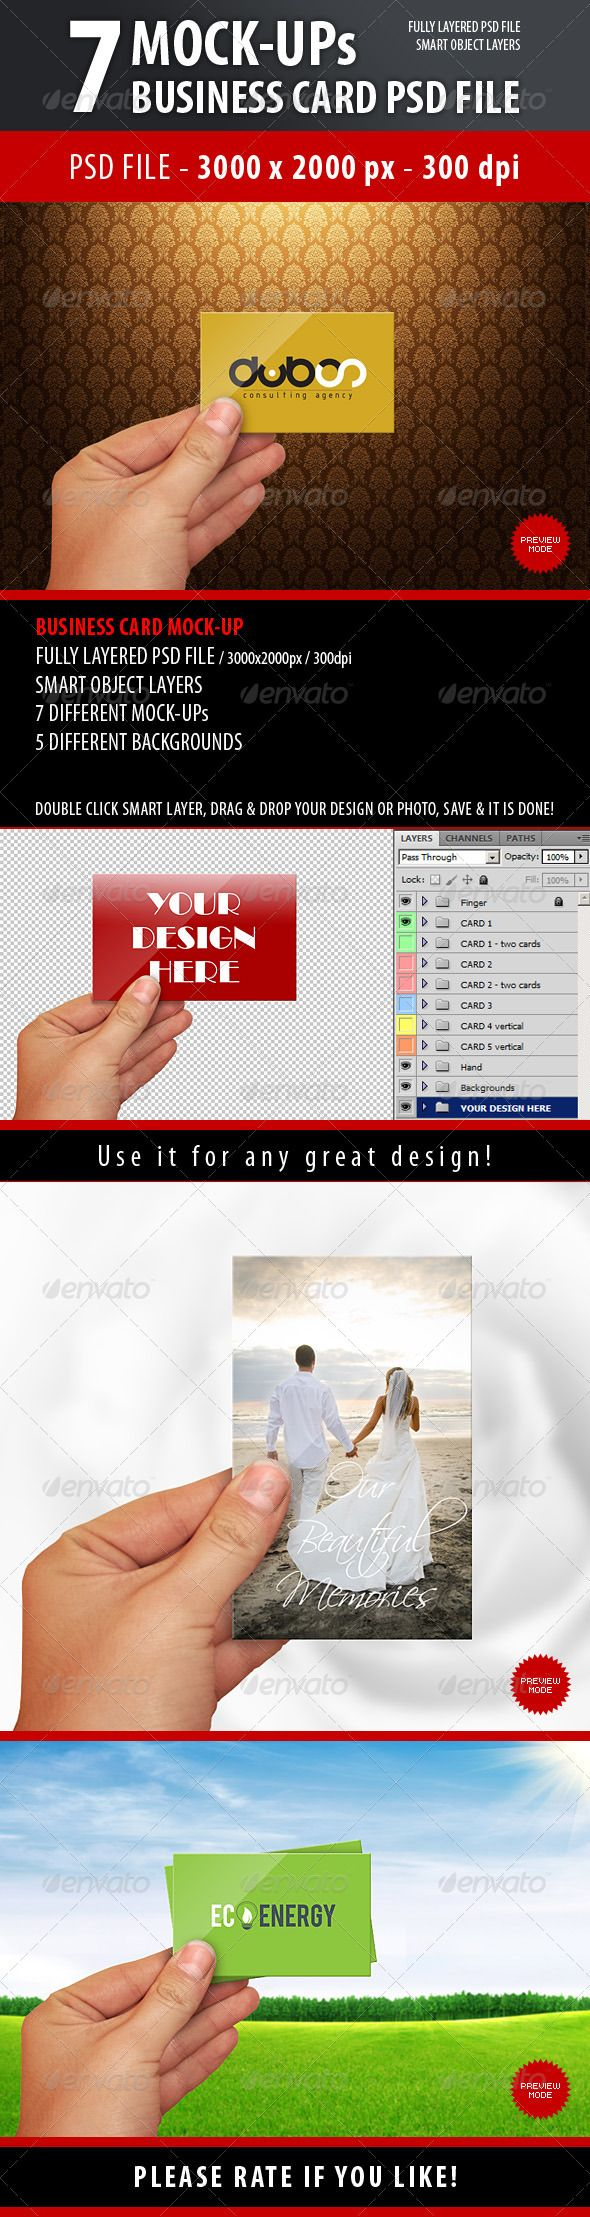 717 best images about Business Card Mockup on Pinterest